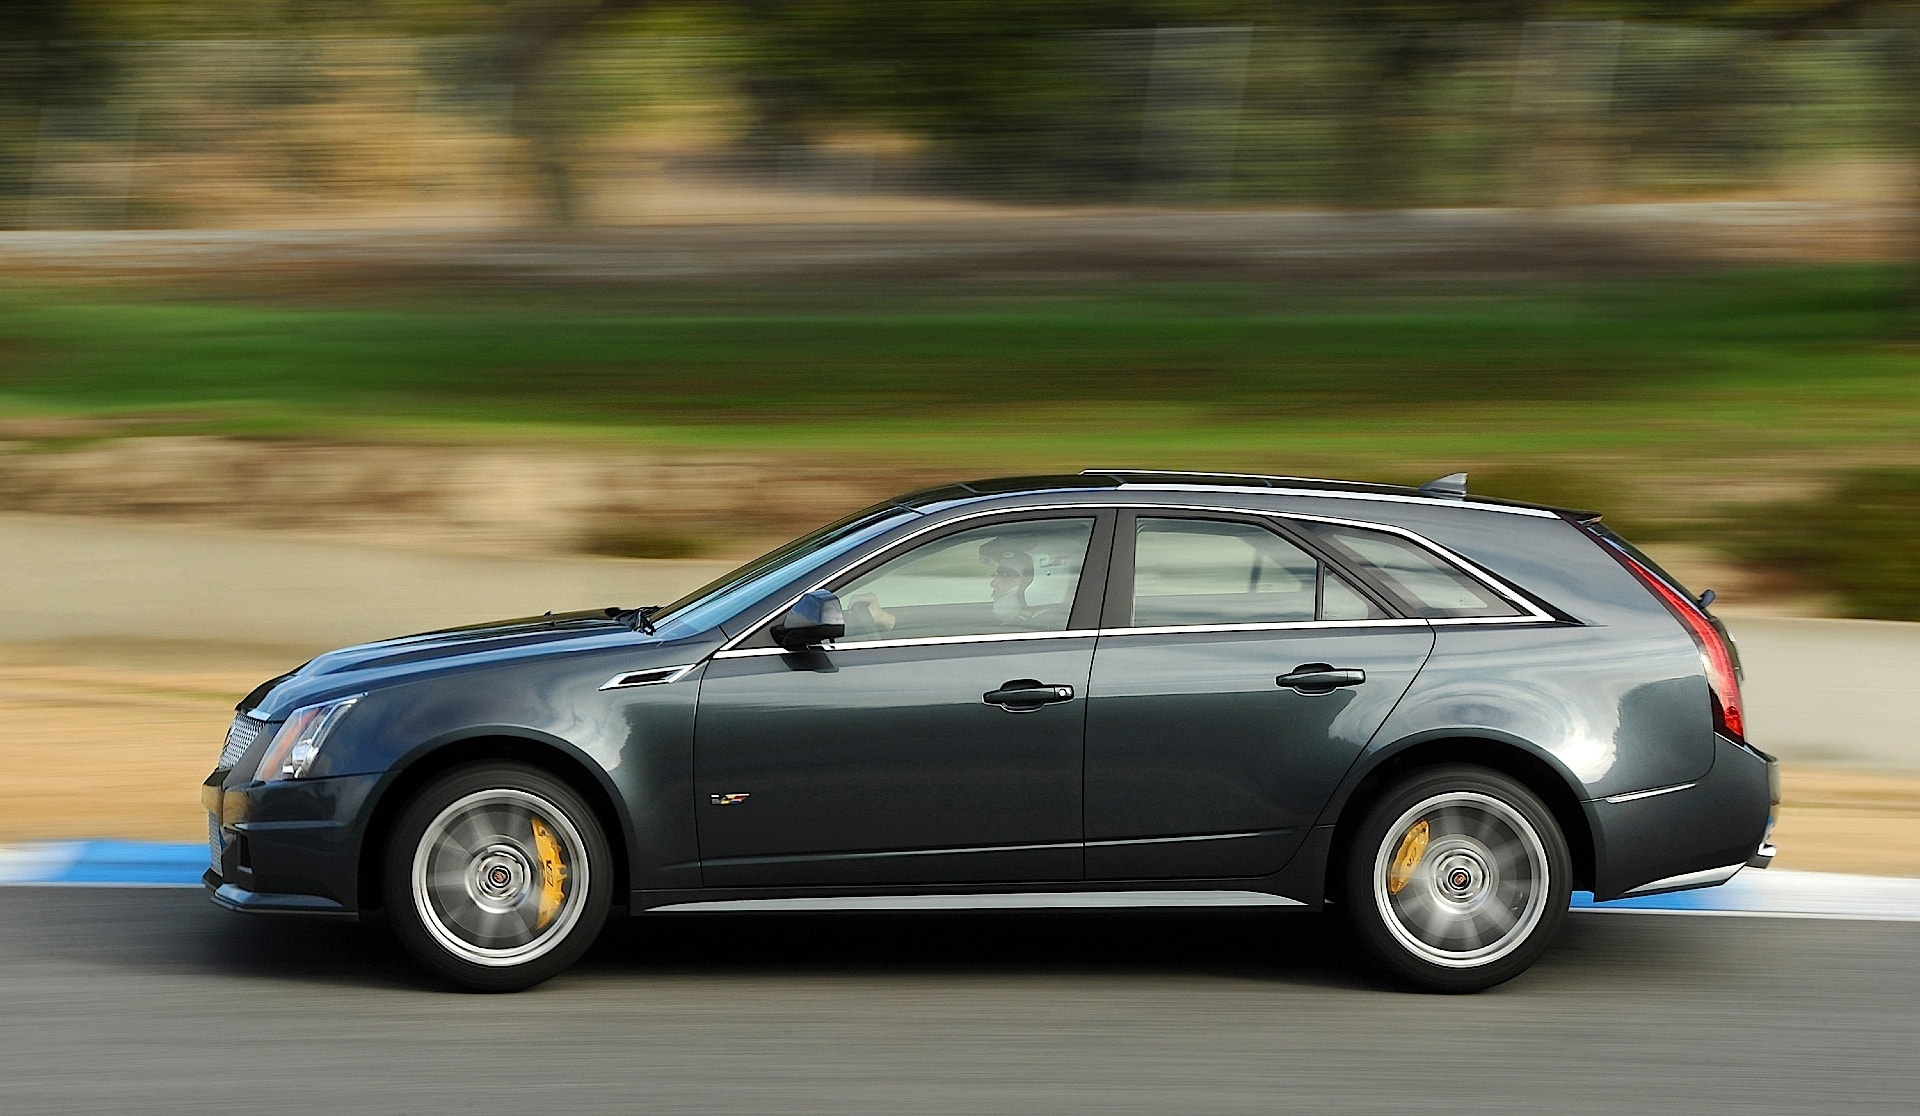 Cadillac CTS-V Wagon widescreen wallpapers